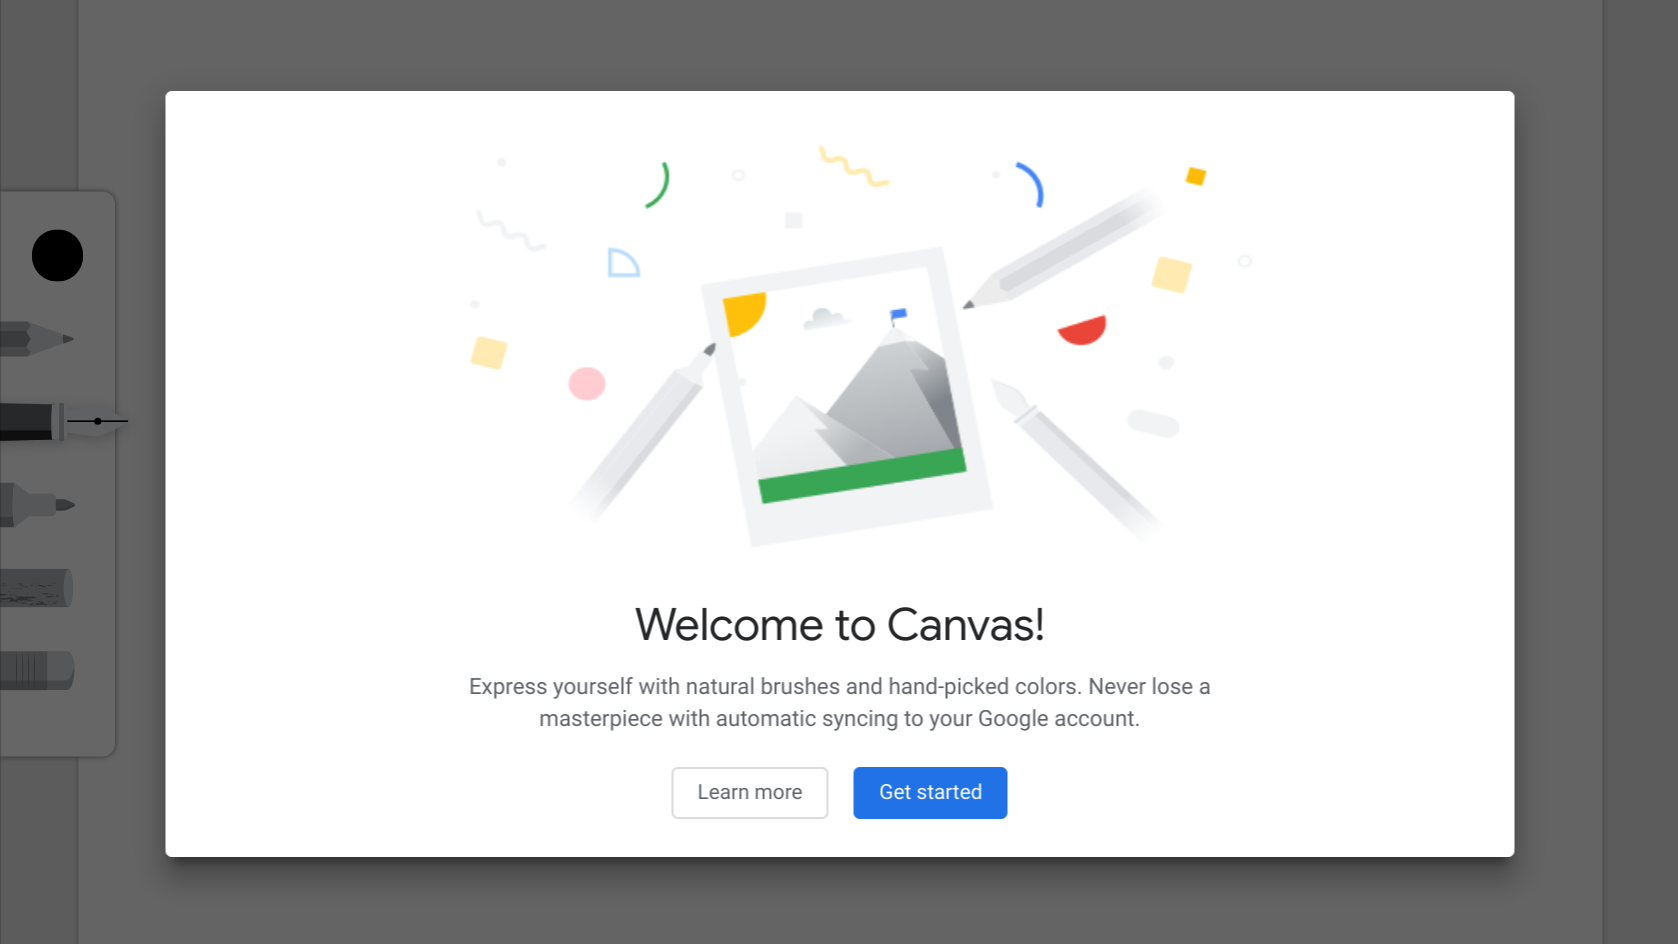 Google Chrome Canvas PWA brings low-latency doodling to